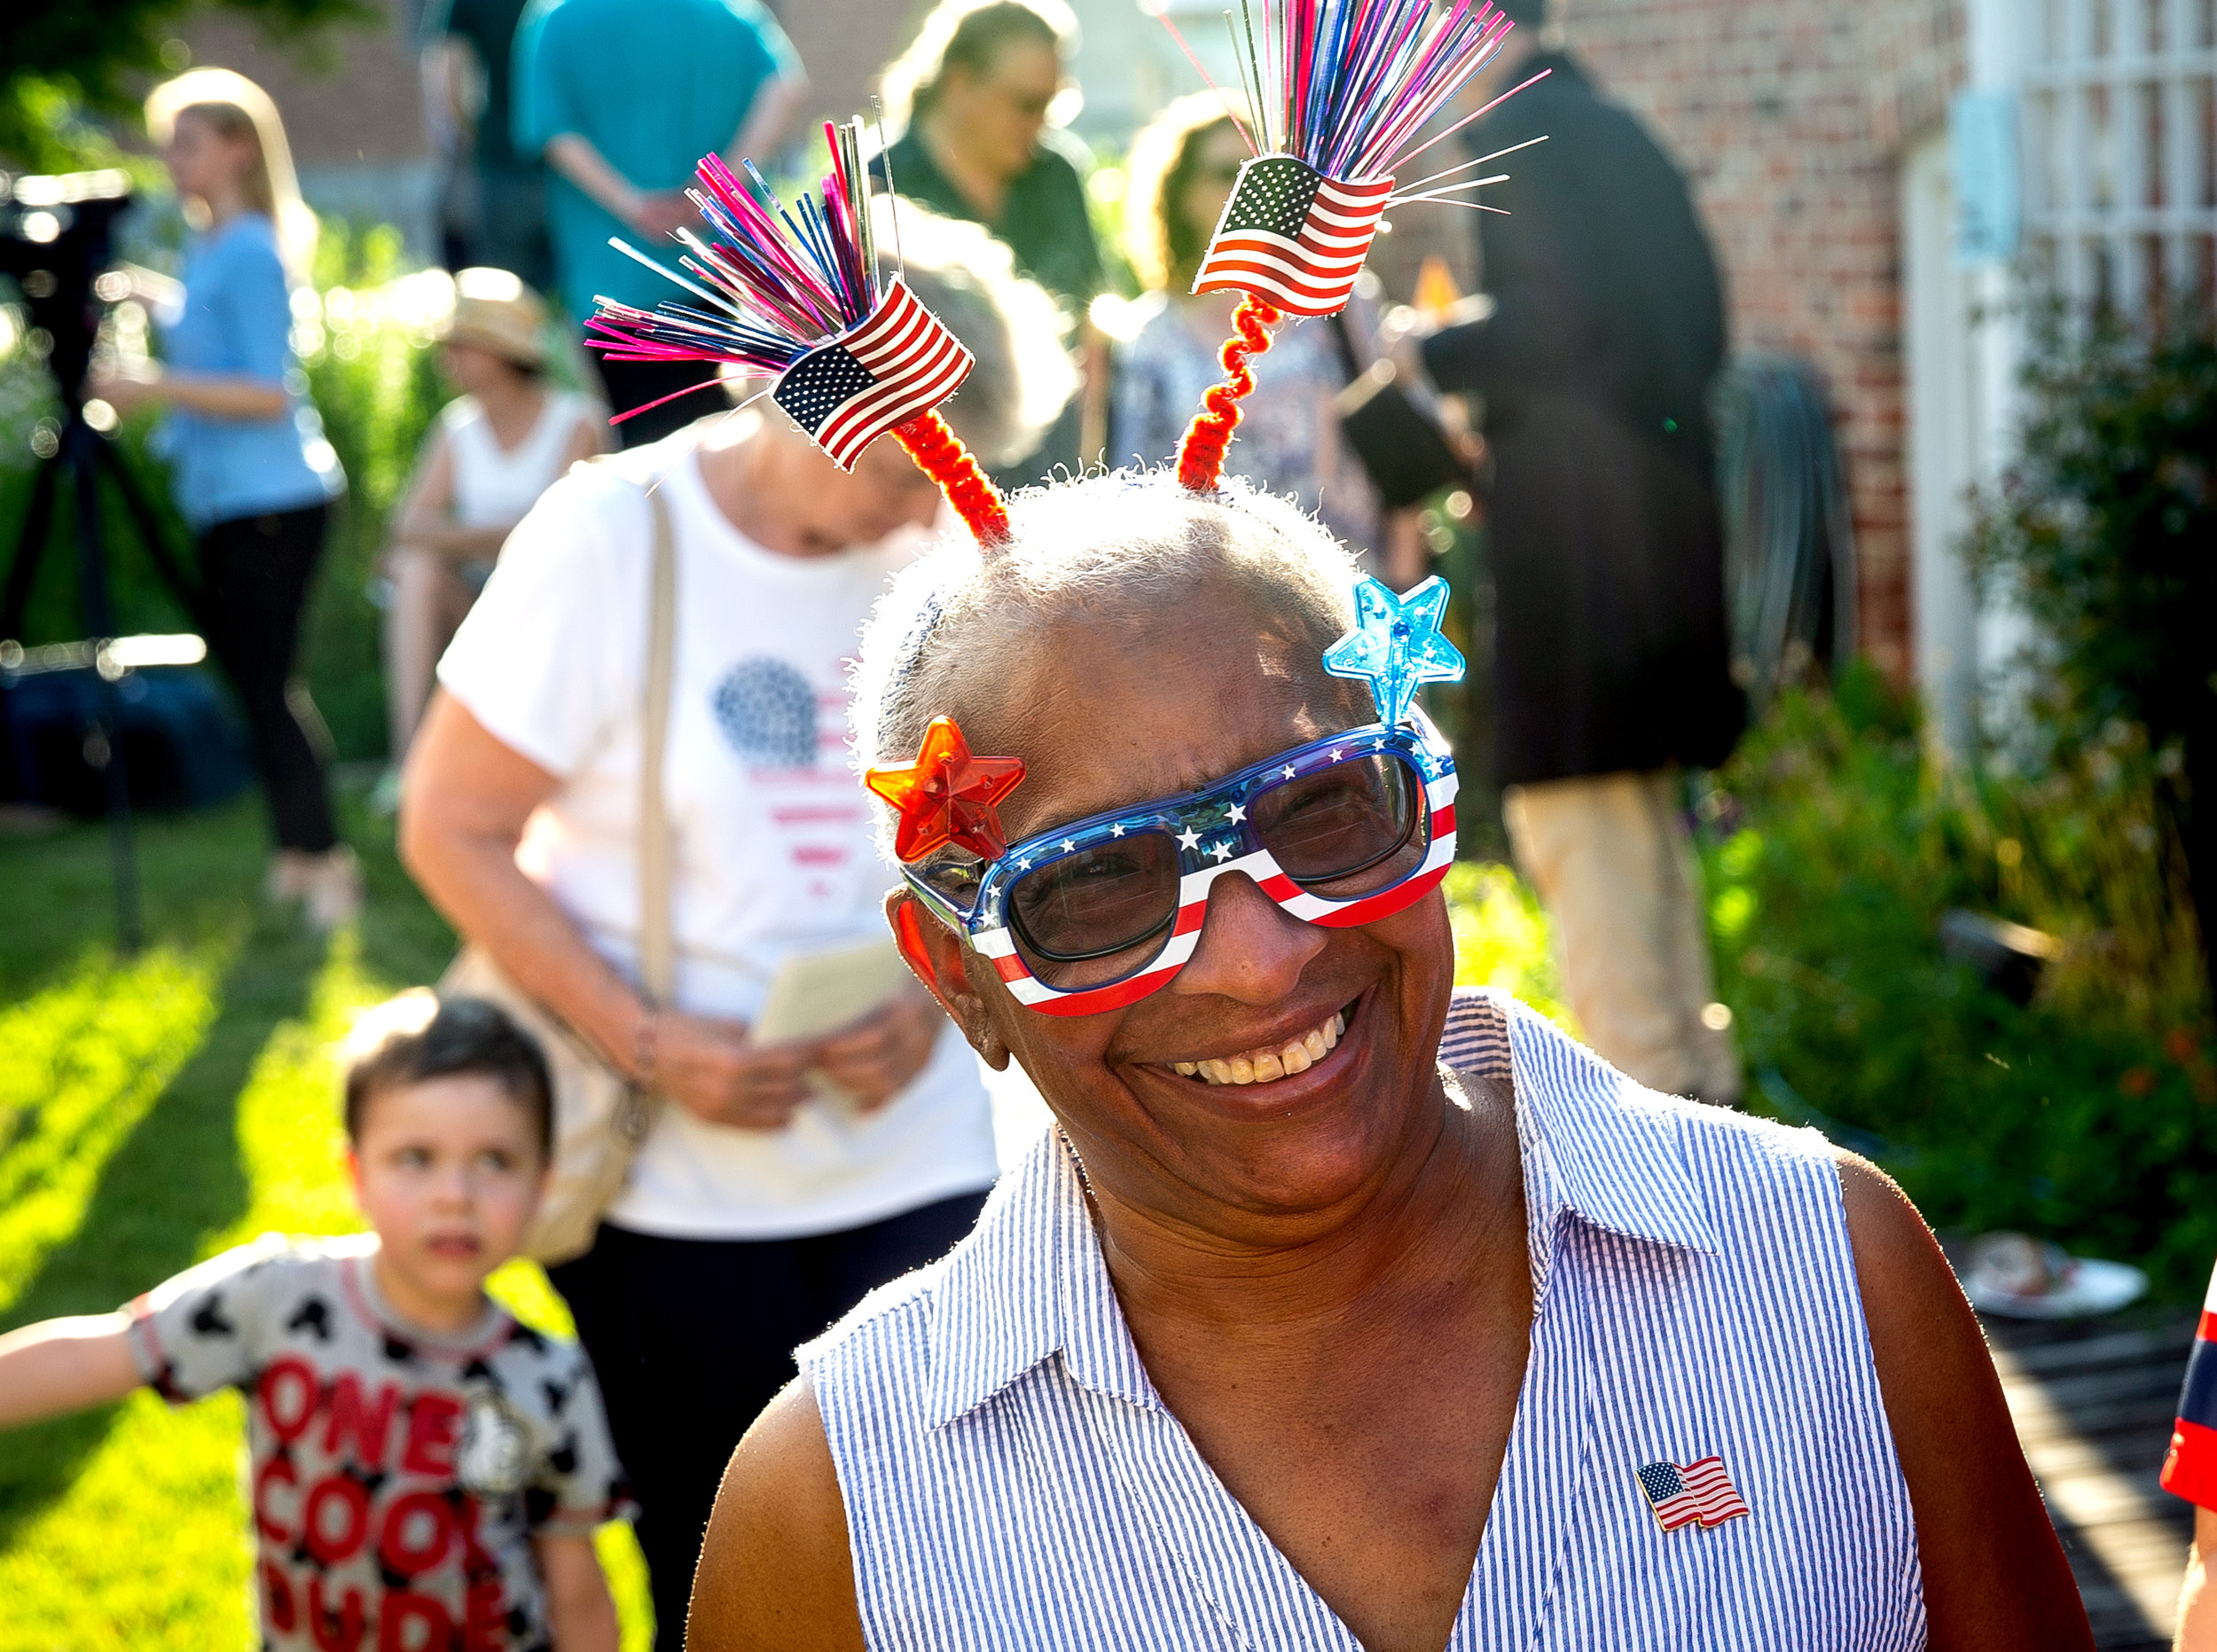 Kathryn Harris wore patriotic sunglasses and deely boppers to Clara Irwin's Annual Strawberry Party and Independence Day Celebration Wednesday, July 4, 2018 at the Iles House in Springfield, Ill. [Rich Saal/The State Journal-Register]